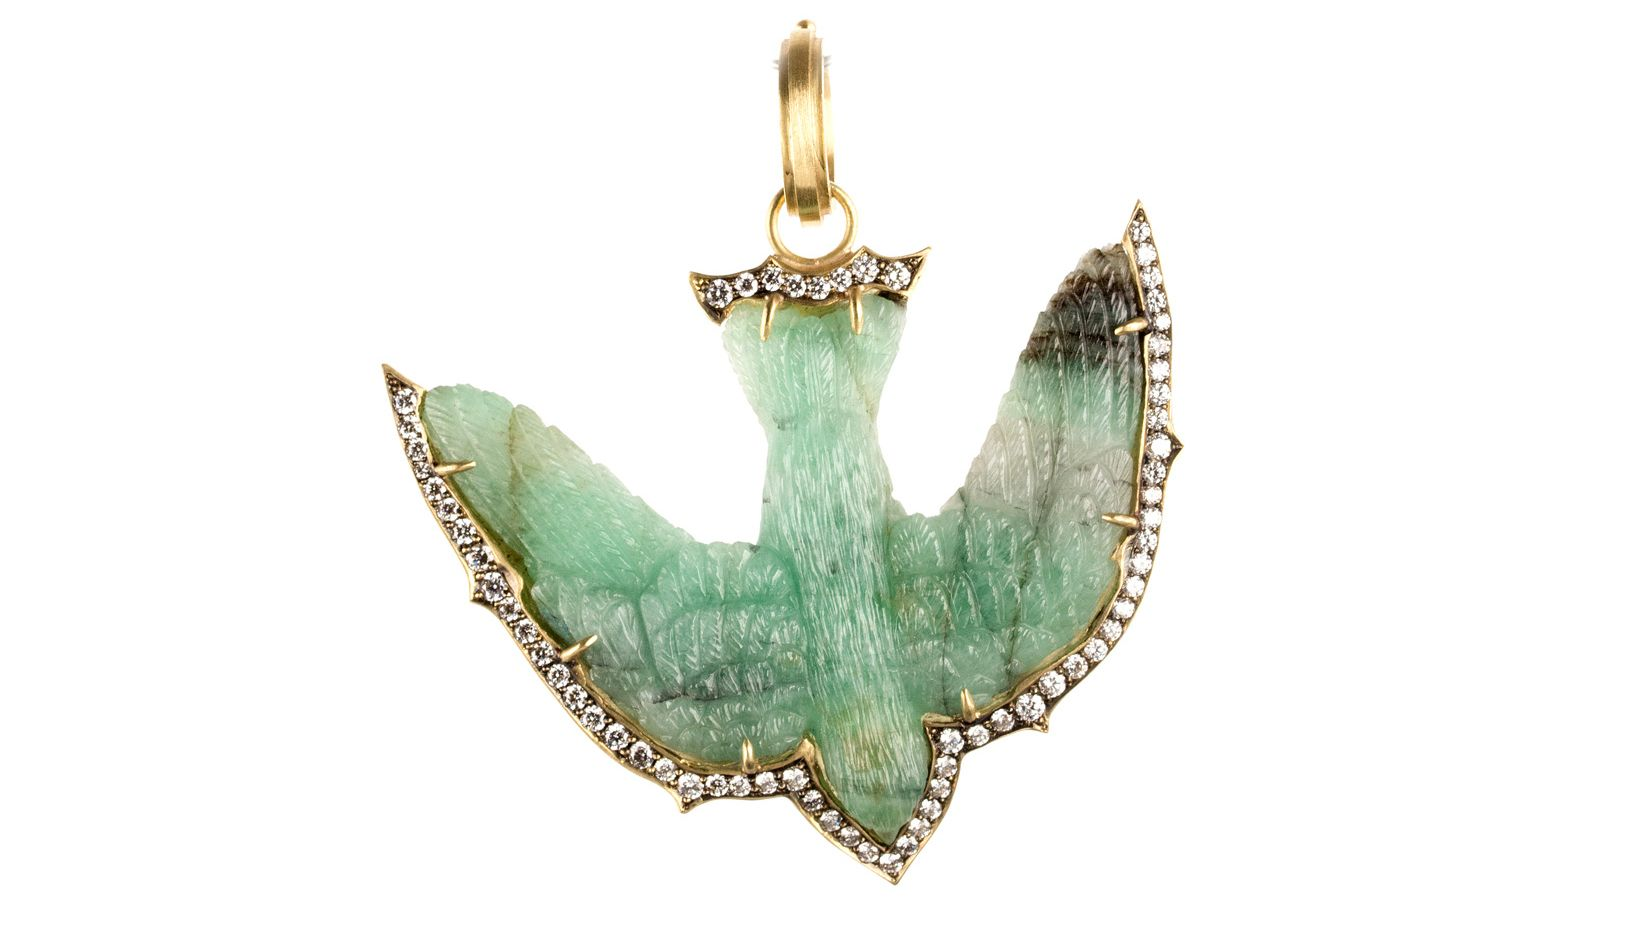 Sylve Cies Hand Carved Jade Swallow Pendant Is A Symbol Of Love